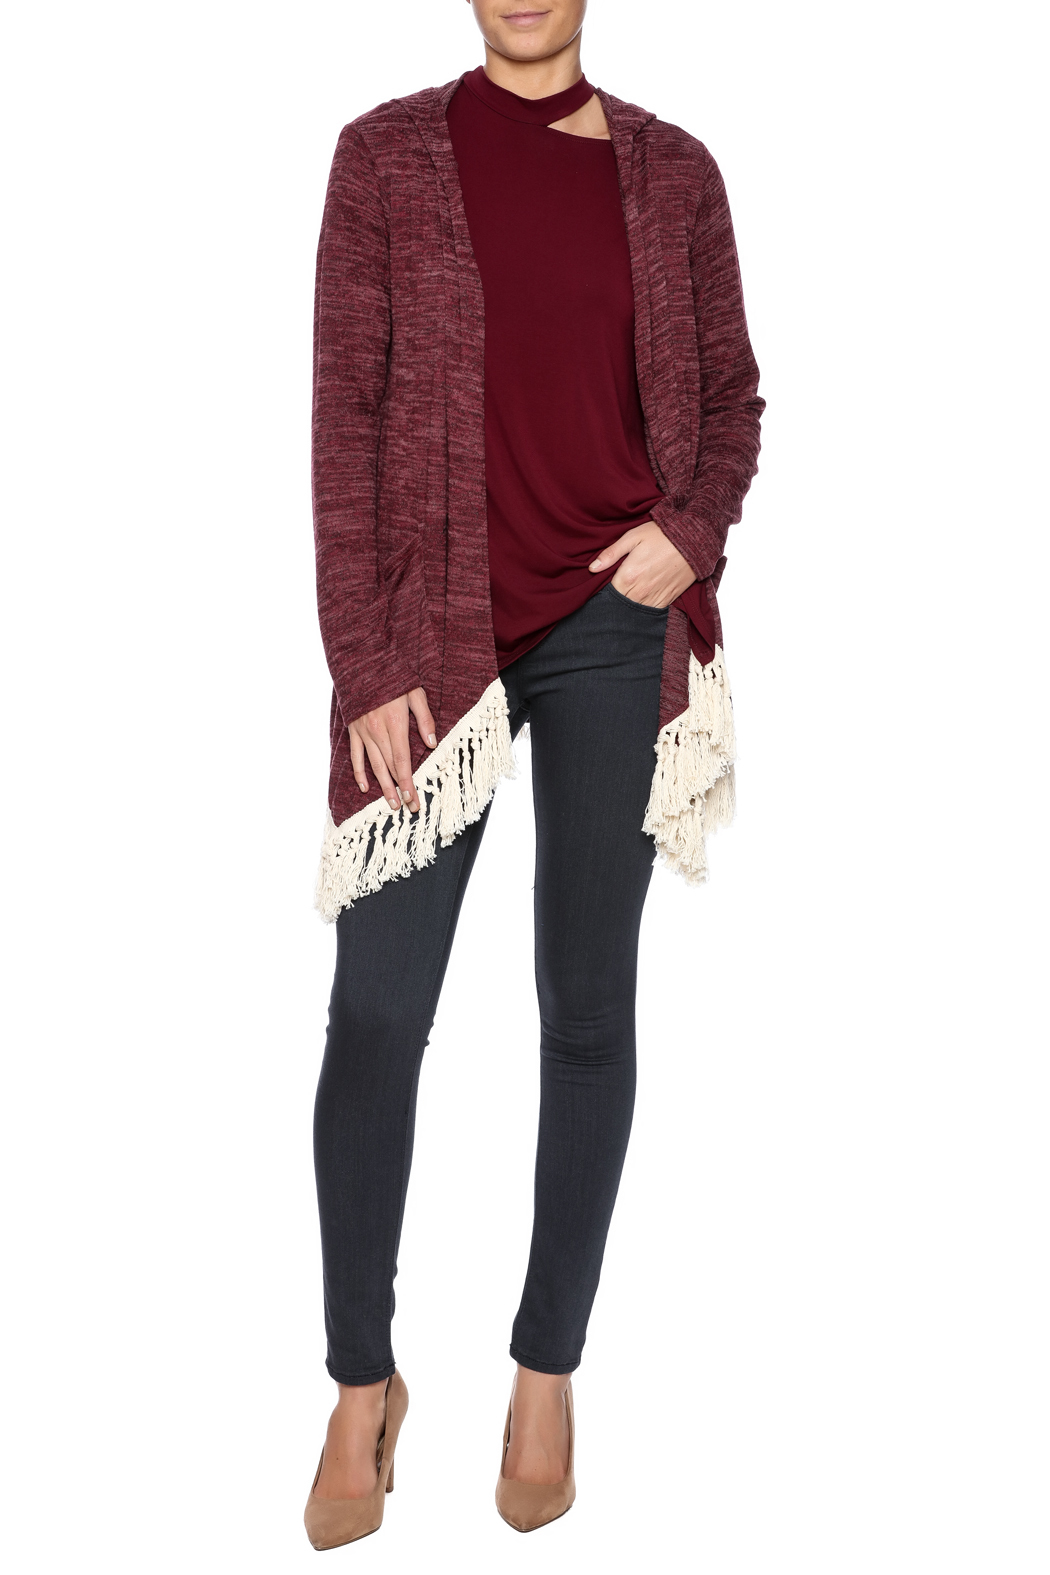 Tea n Rose Hooded Fringe Cardigan from North Carolina by Magnolia ...